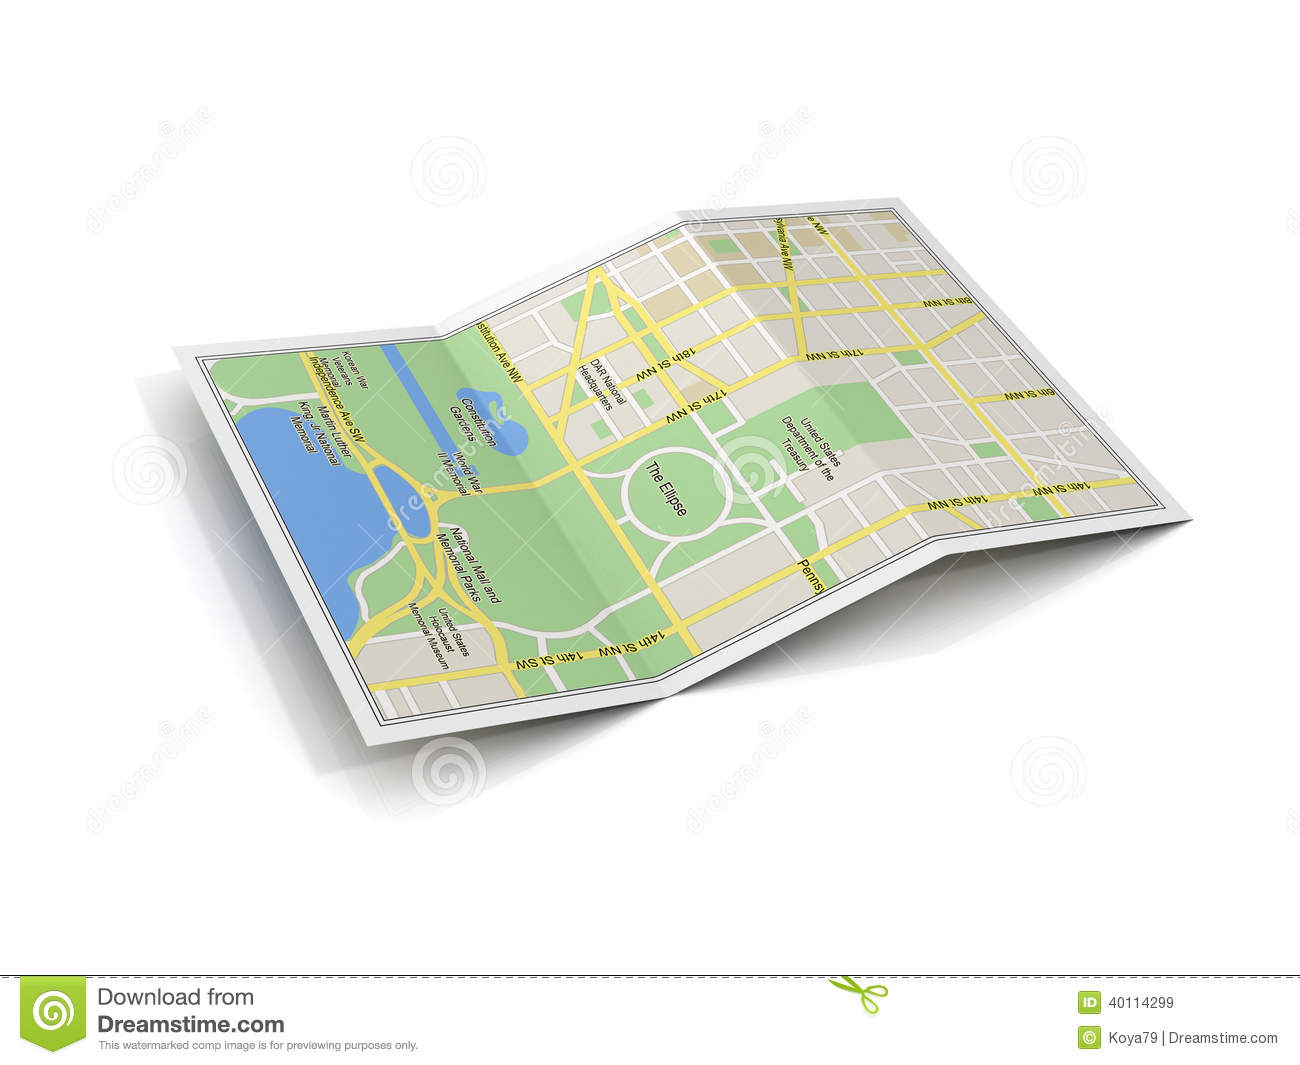 City map 3d illustration stock illustration  Illustration of holiday     Download City map 3d illustration stock illustration  Illustration of  holiday   40114299